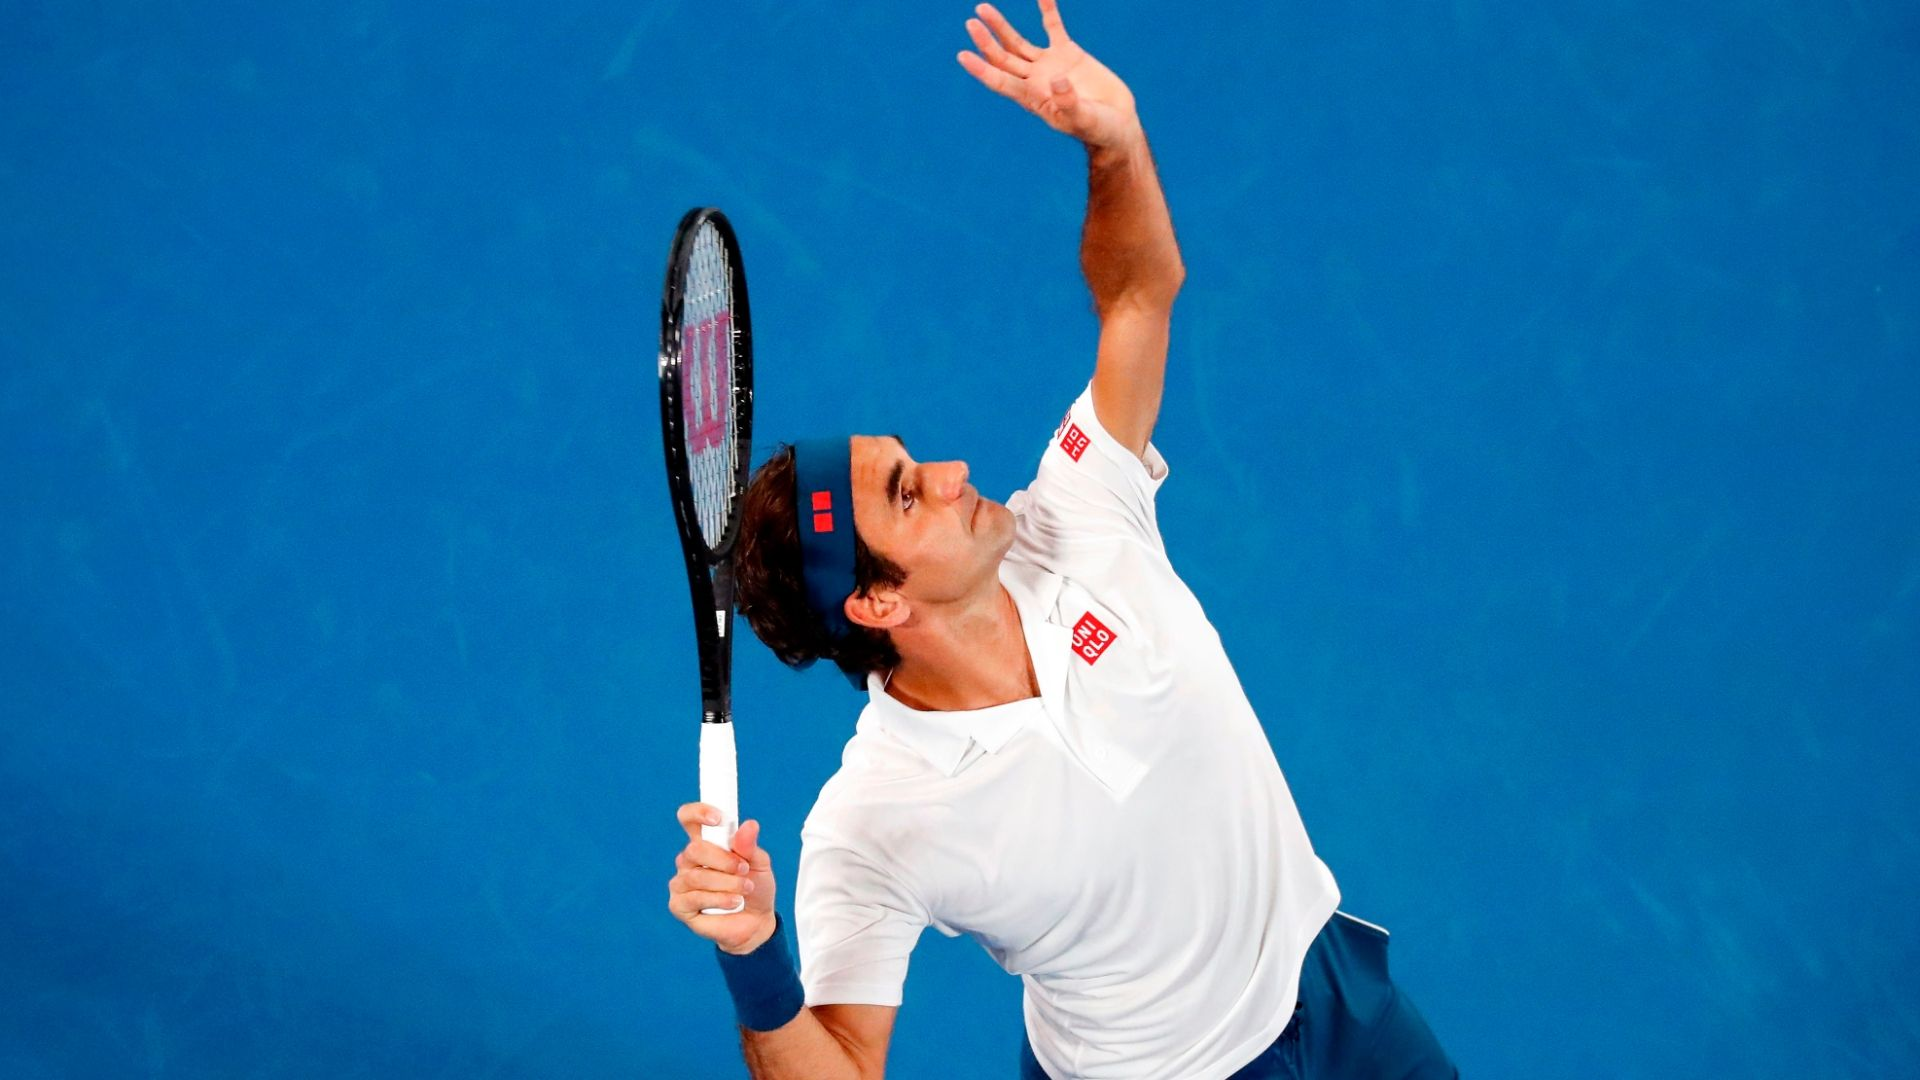 Federer captures 1st set with ace